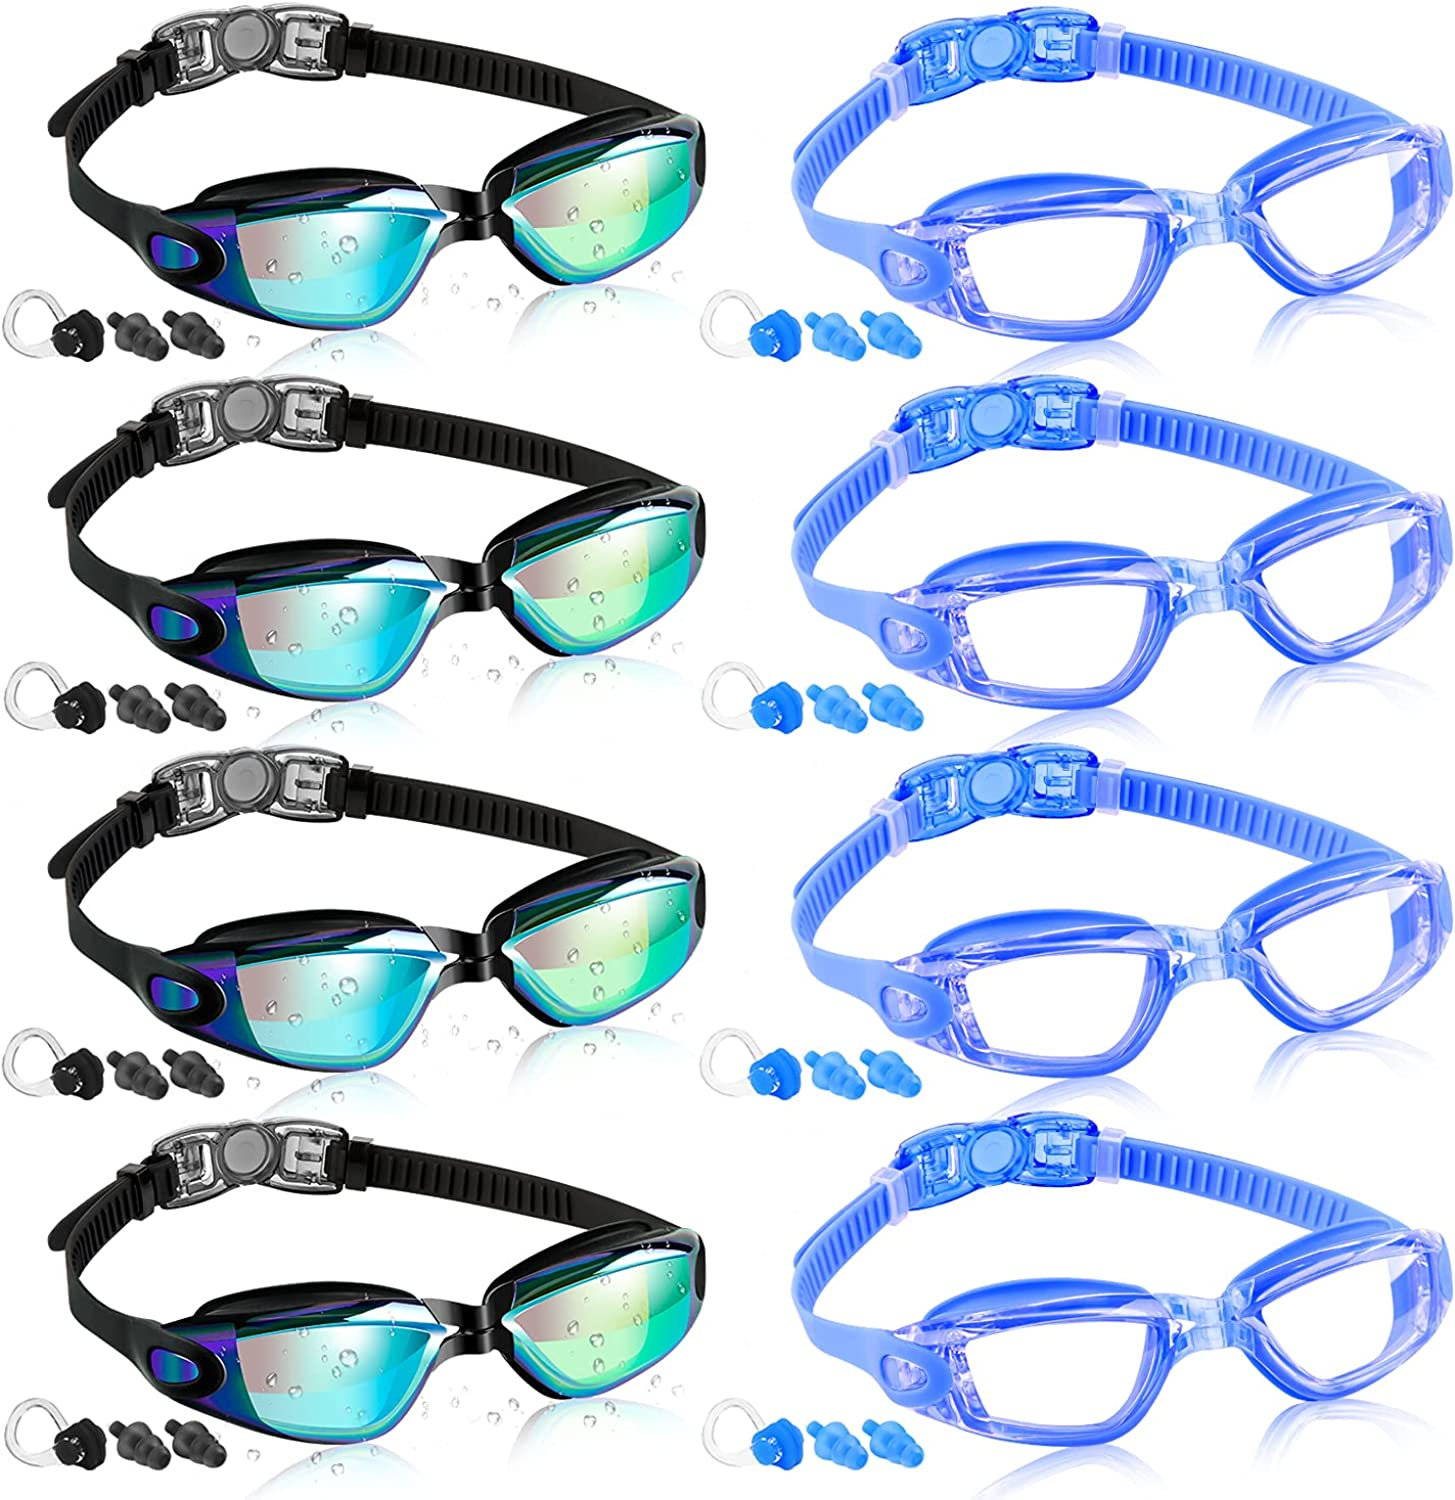 COOLOO 2 8 Pack Swimming Goggles Bombing free shipping service Adult Kids Me for Swim